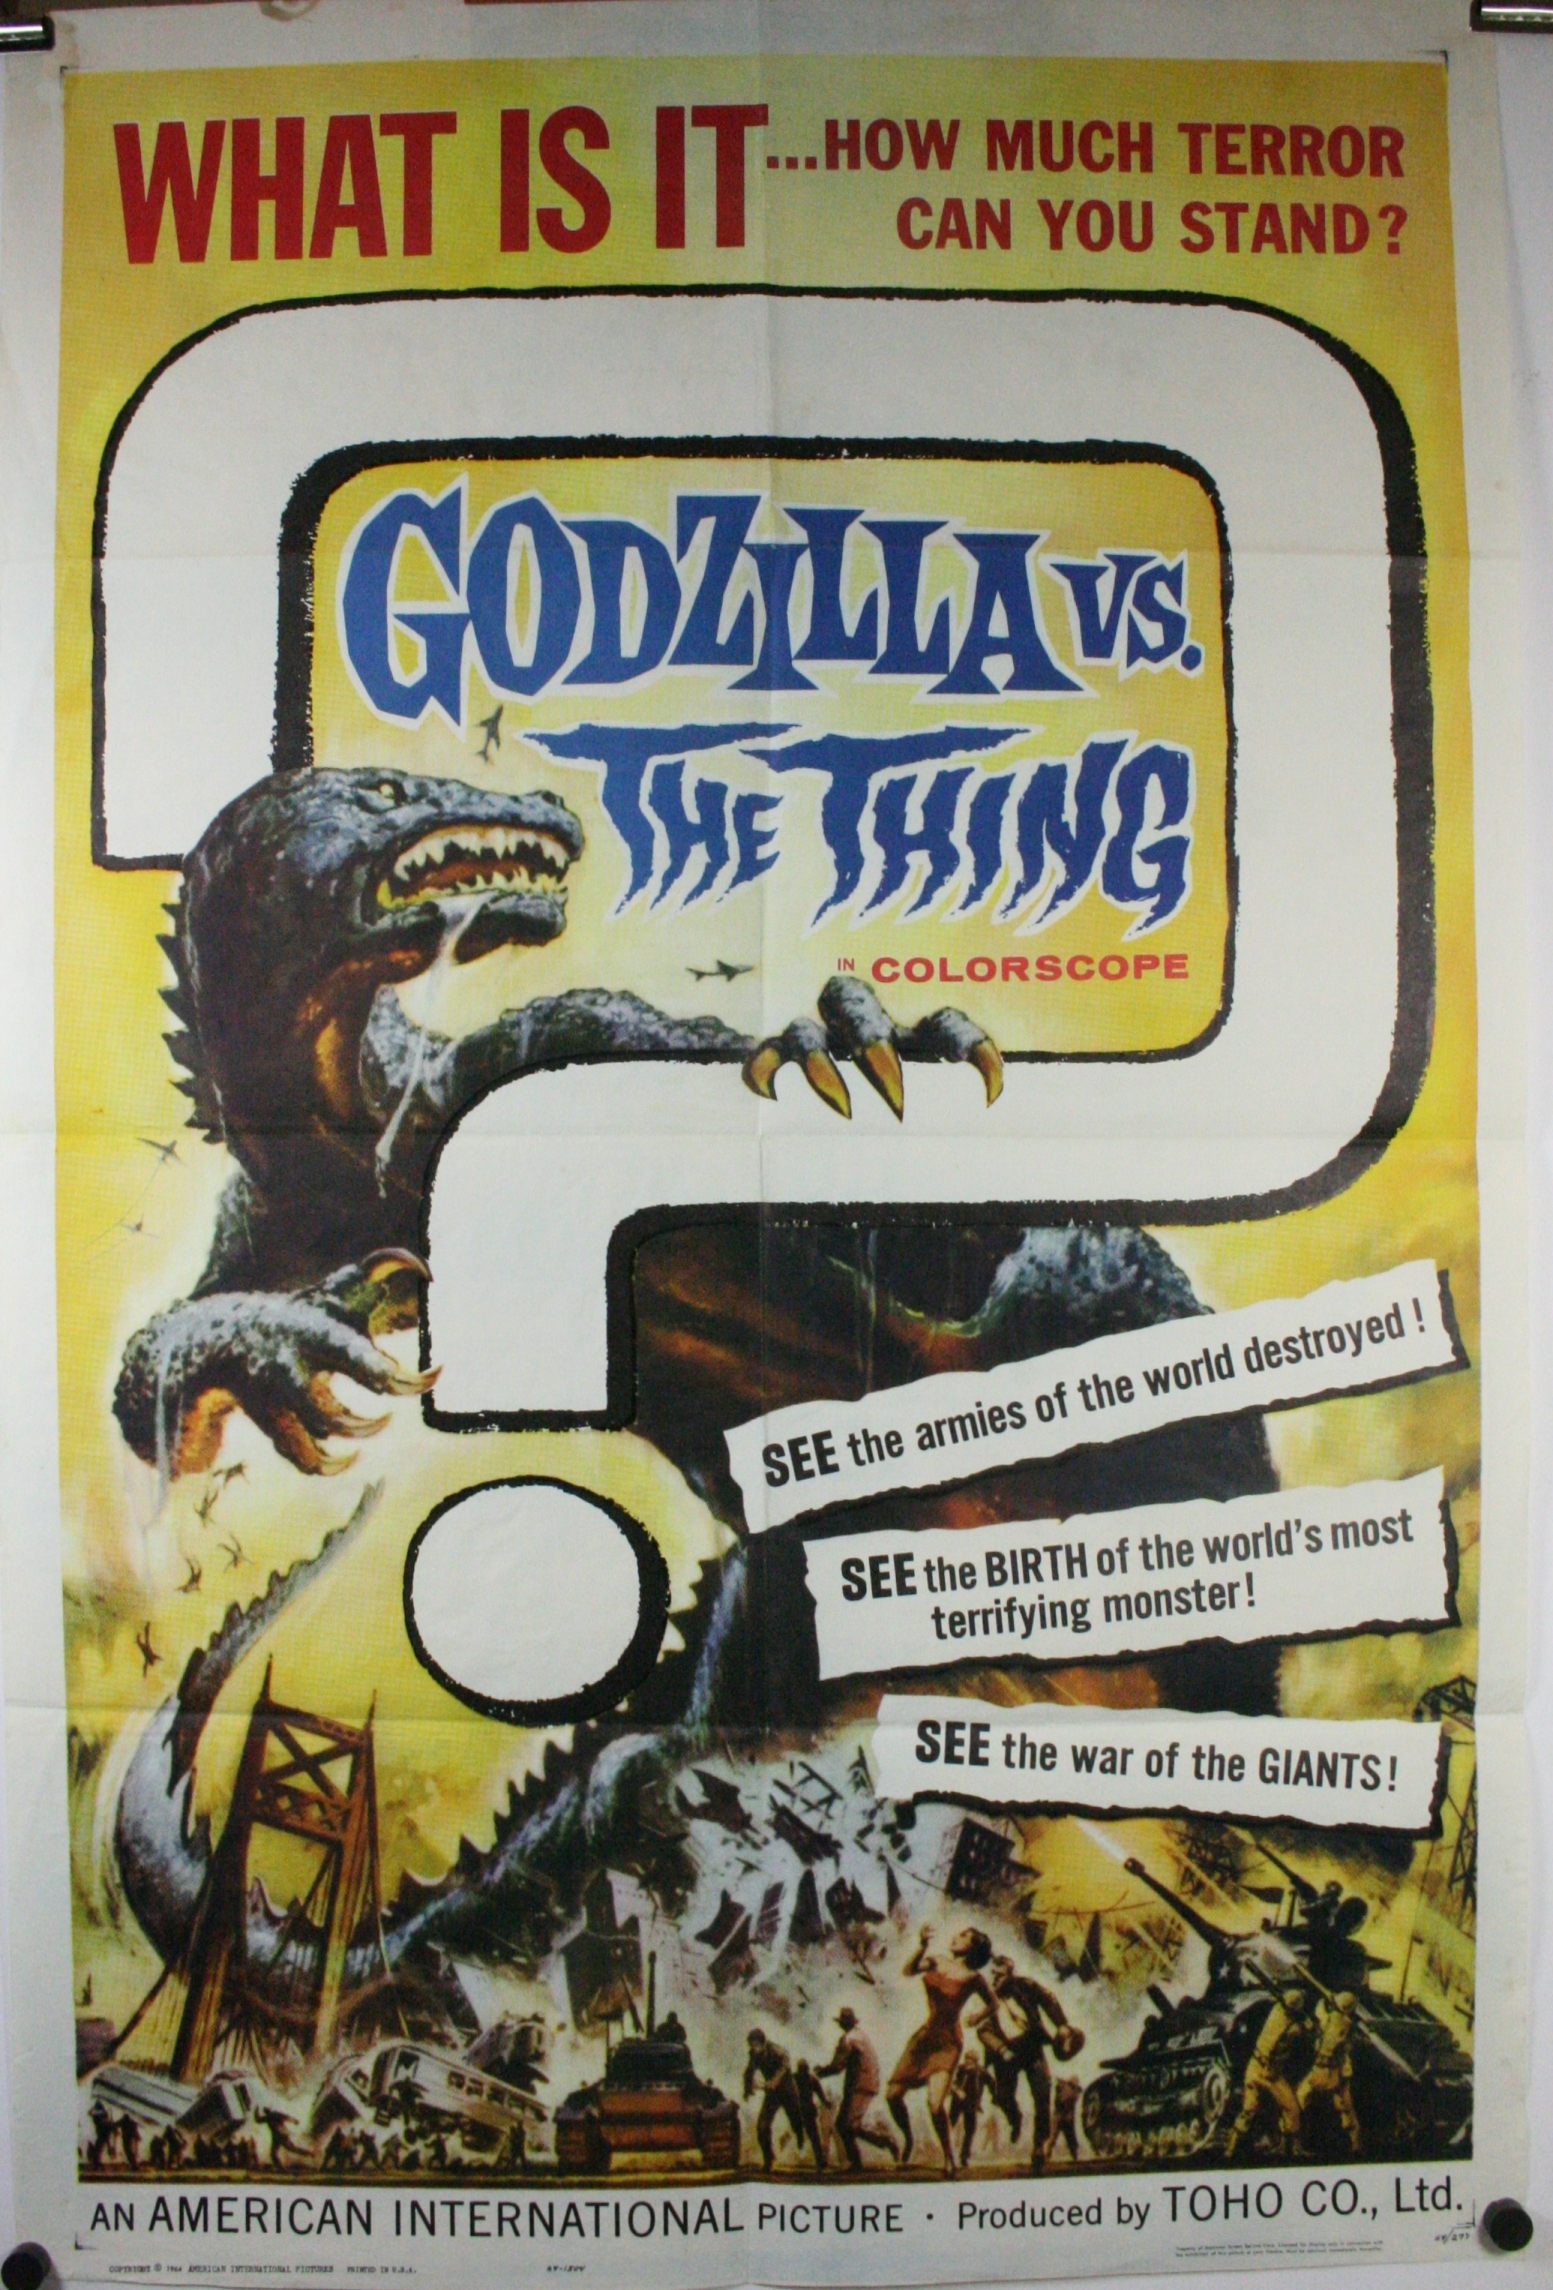 Godzilla vs the thing 2031-C75